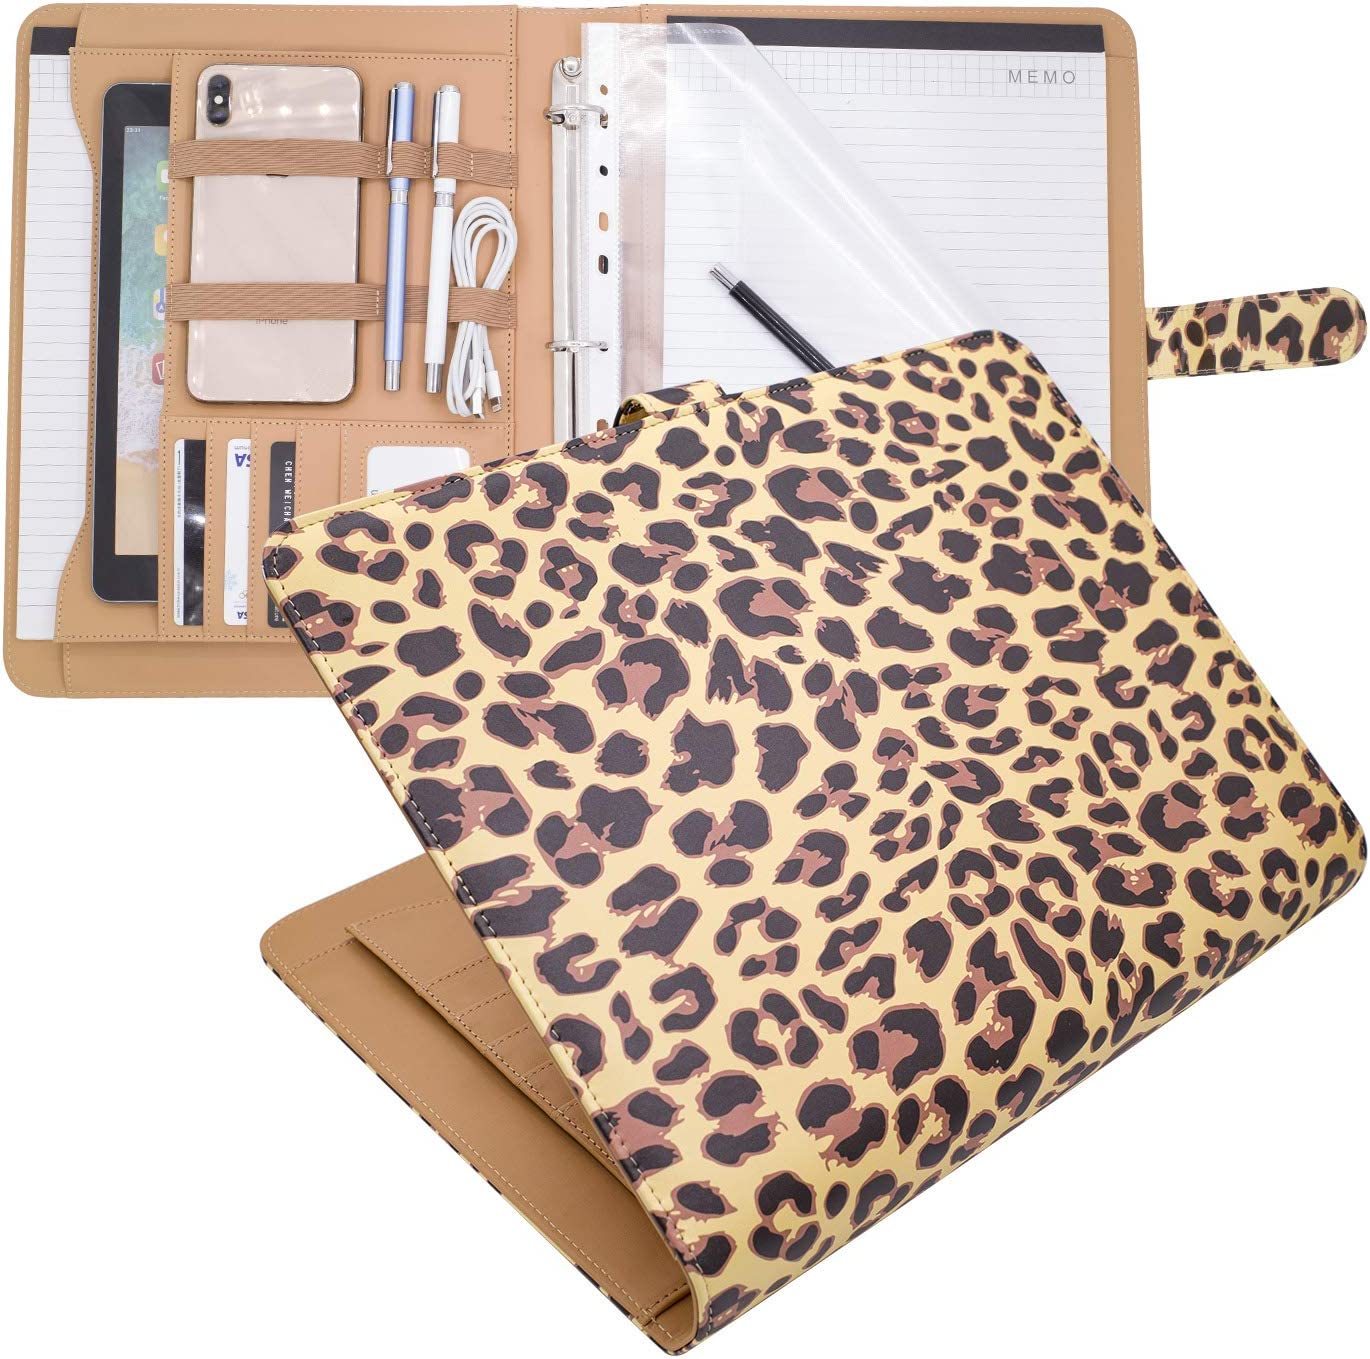 LOSOPHY Padfolio 3 Ring Binder 1 inch,Leather Portfolio Three Ring Binders Business Checks Personal Printed. Office Organizer for Women and Mens. (Leopard 1 Inch Ring)